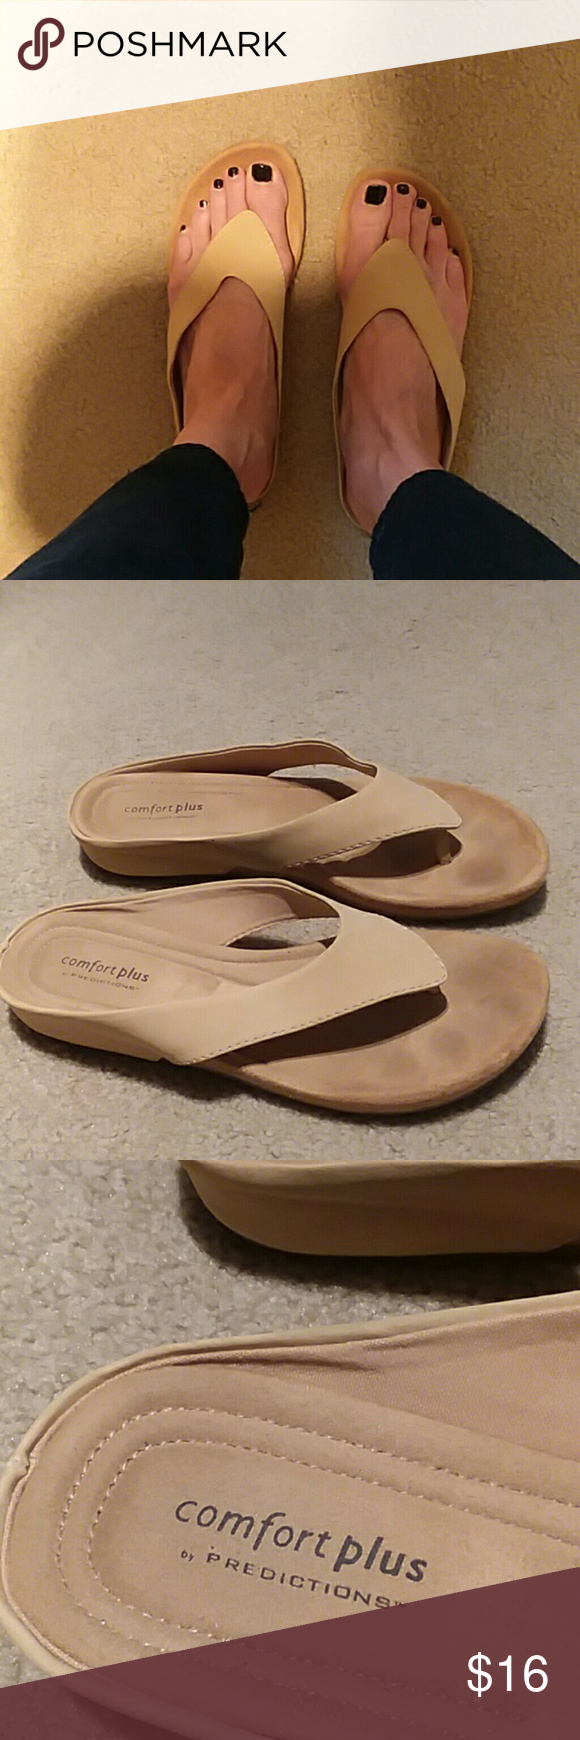 predictions sandals in tan. Size 9.5